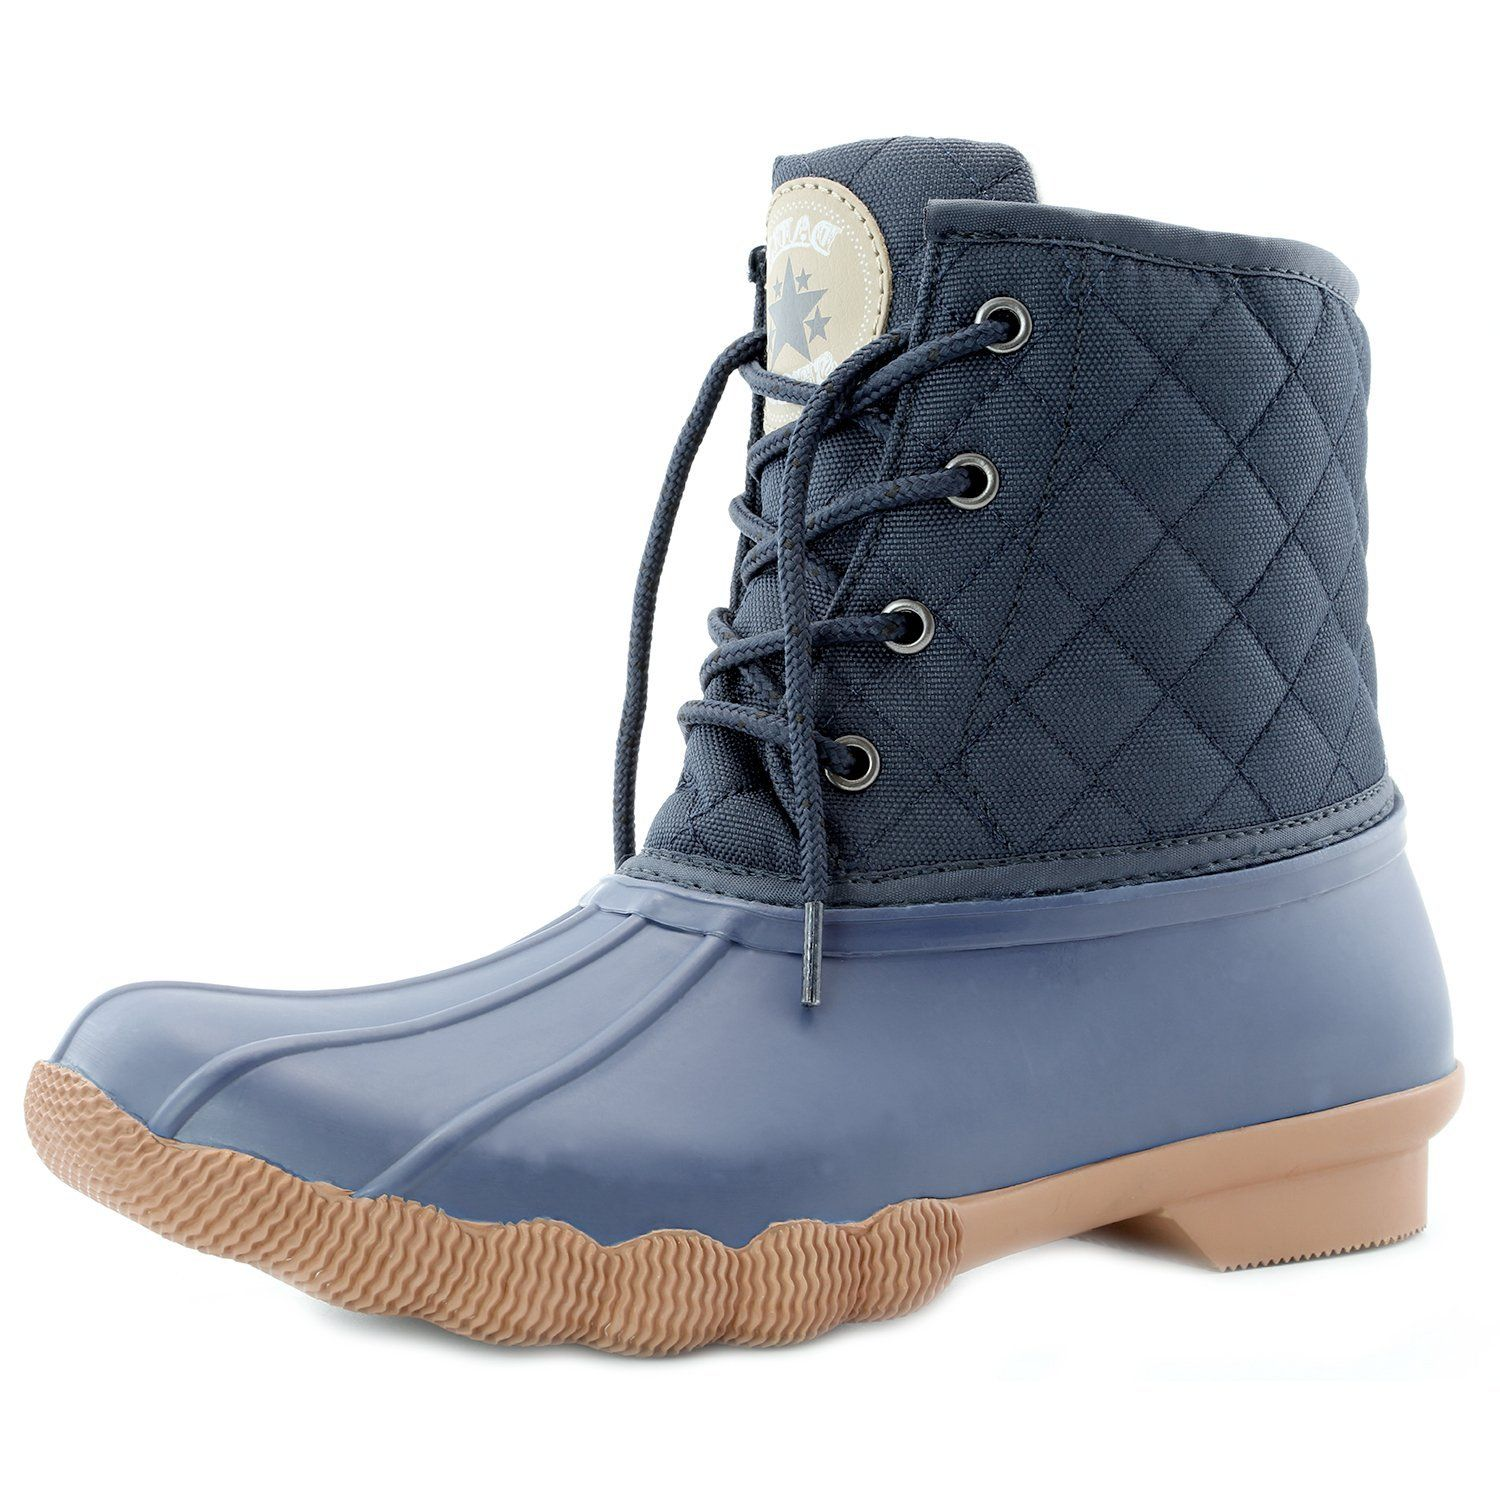 Women's Ankle High Duck Snow Booties Up Quilted Padded Rain Mud Rubber Waterproof Boots